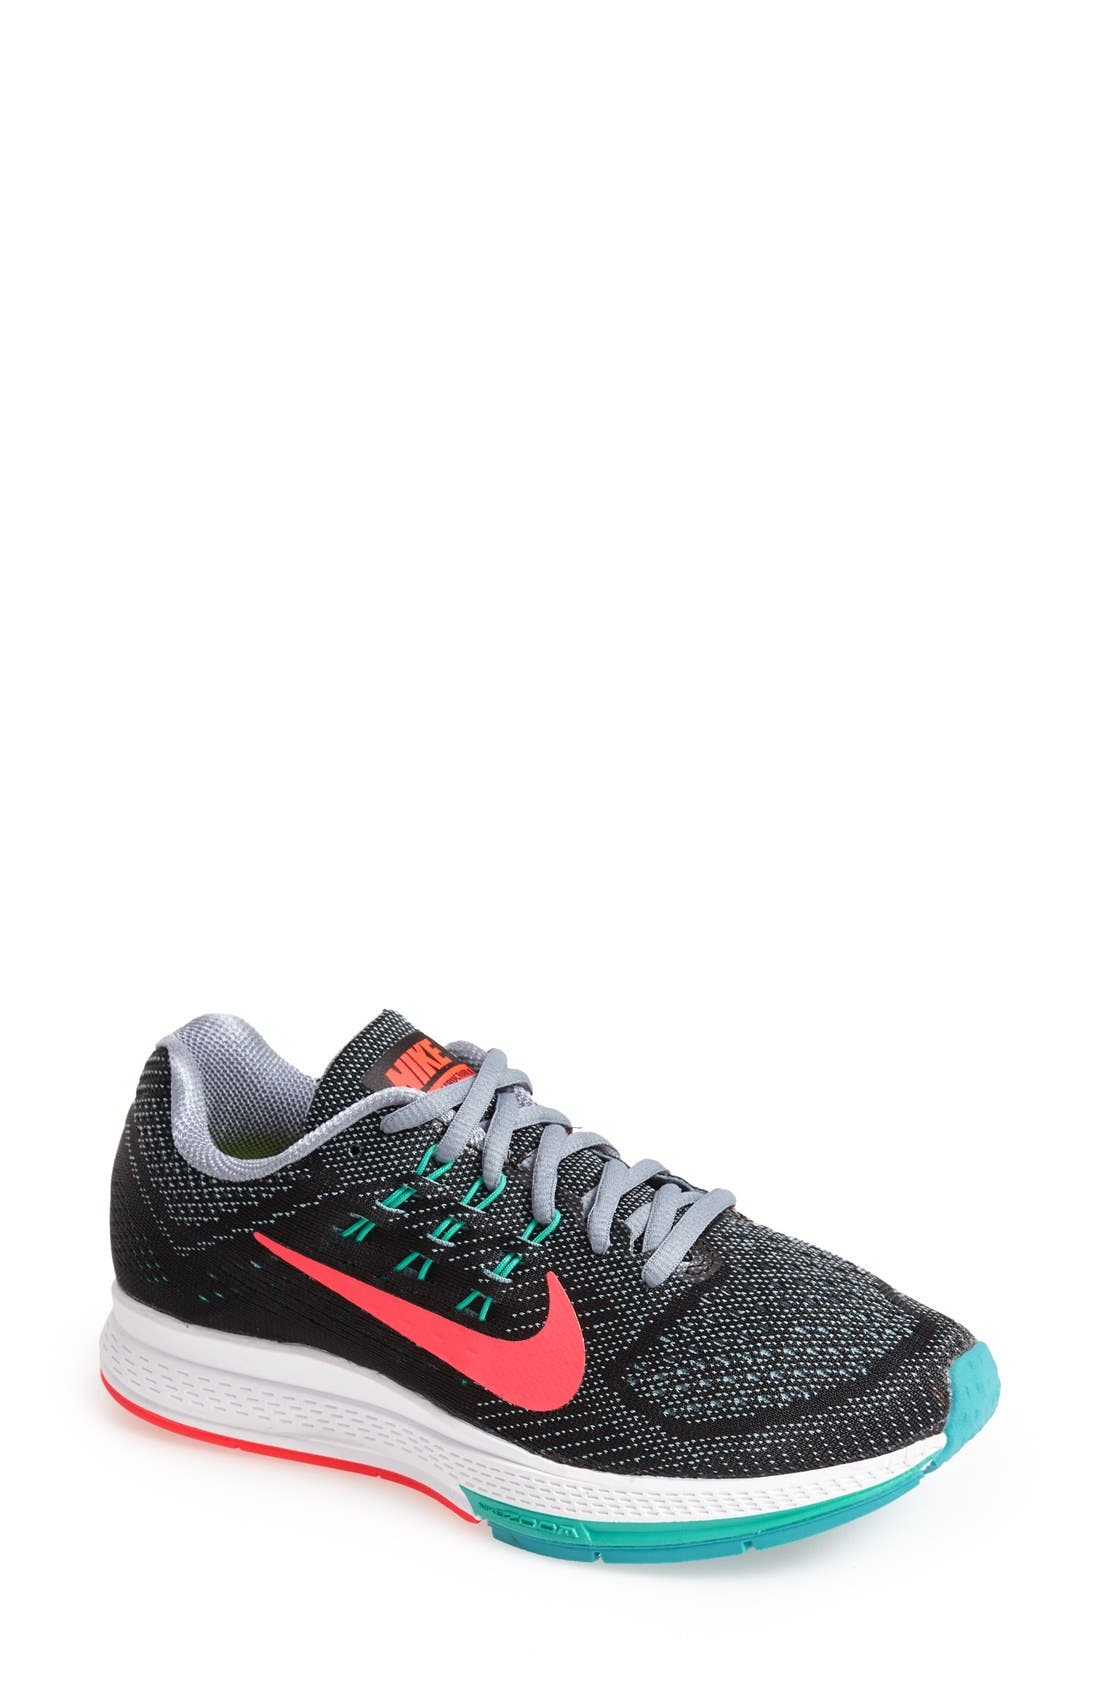 Alternate Image 1 Selected - Nike 'Air Zoom Structure 18' Running Shoe (Wide) (Women)